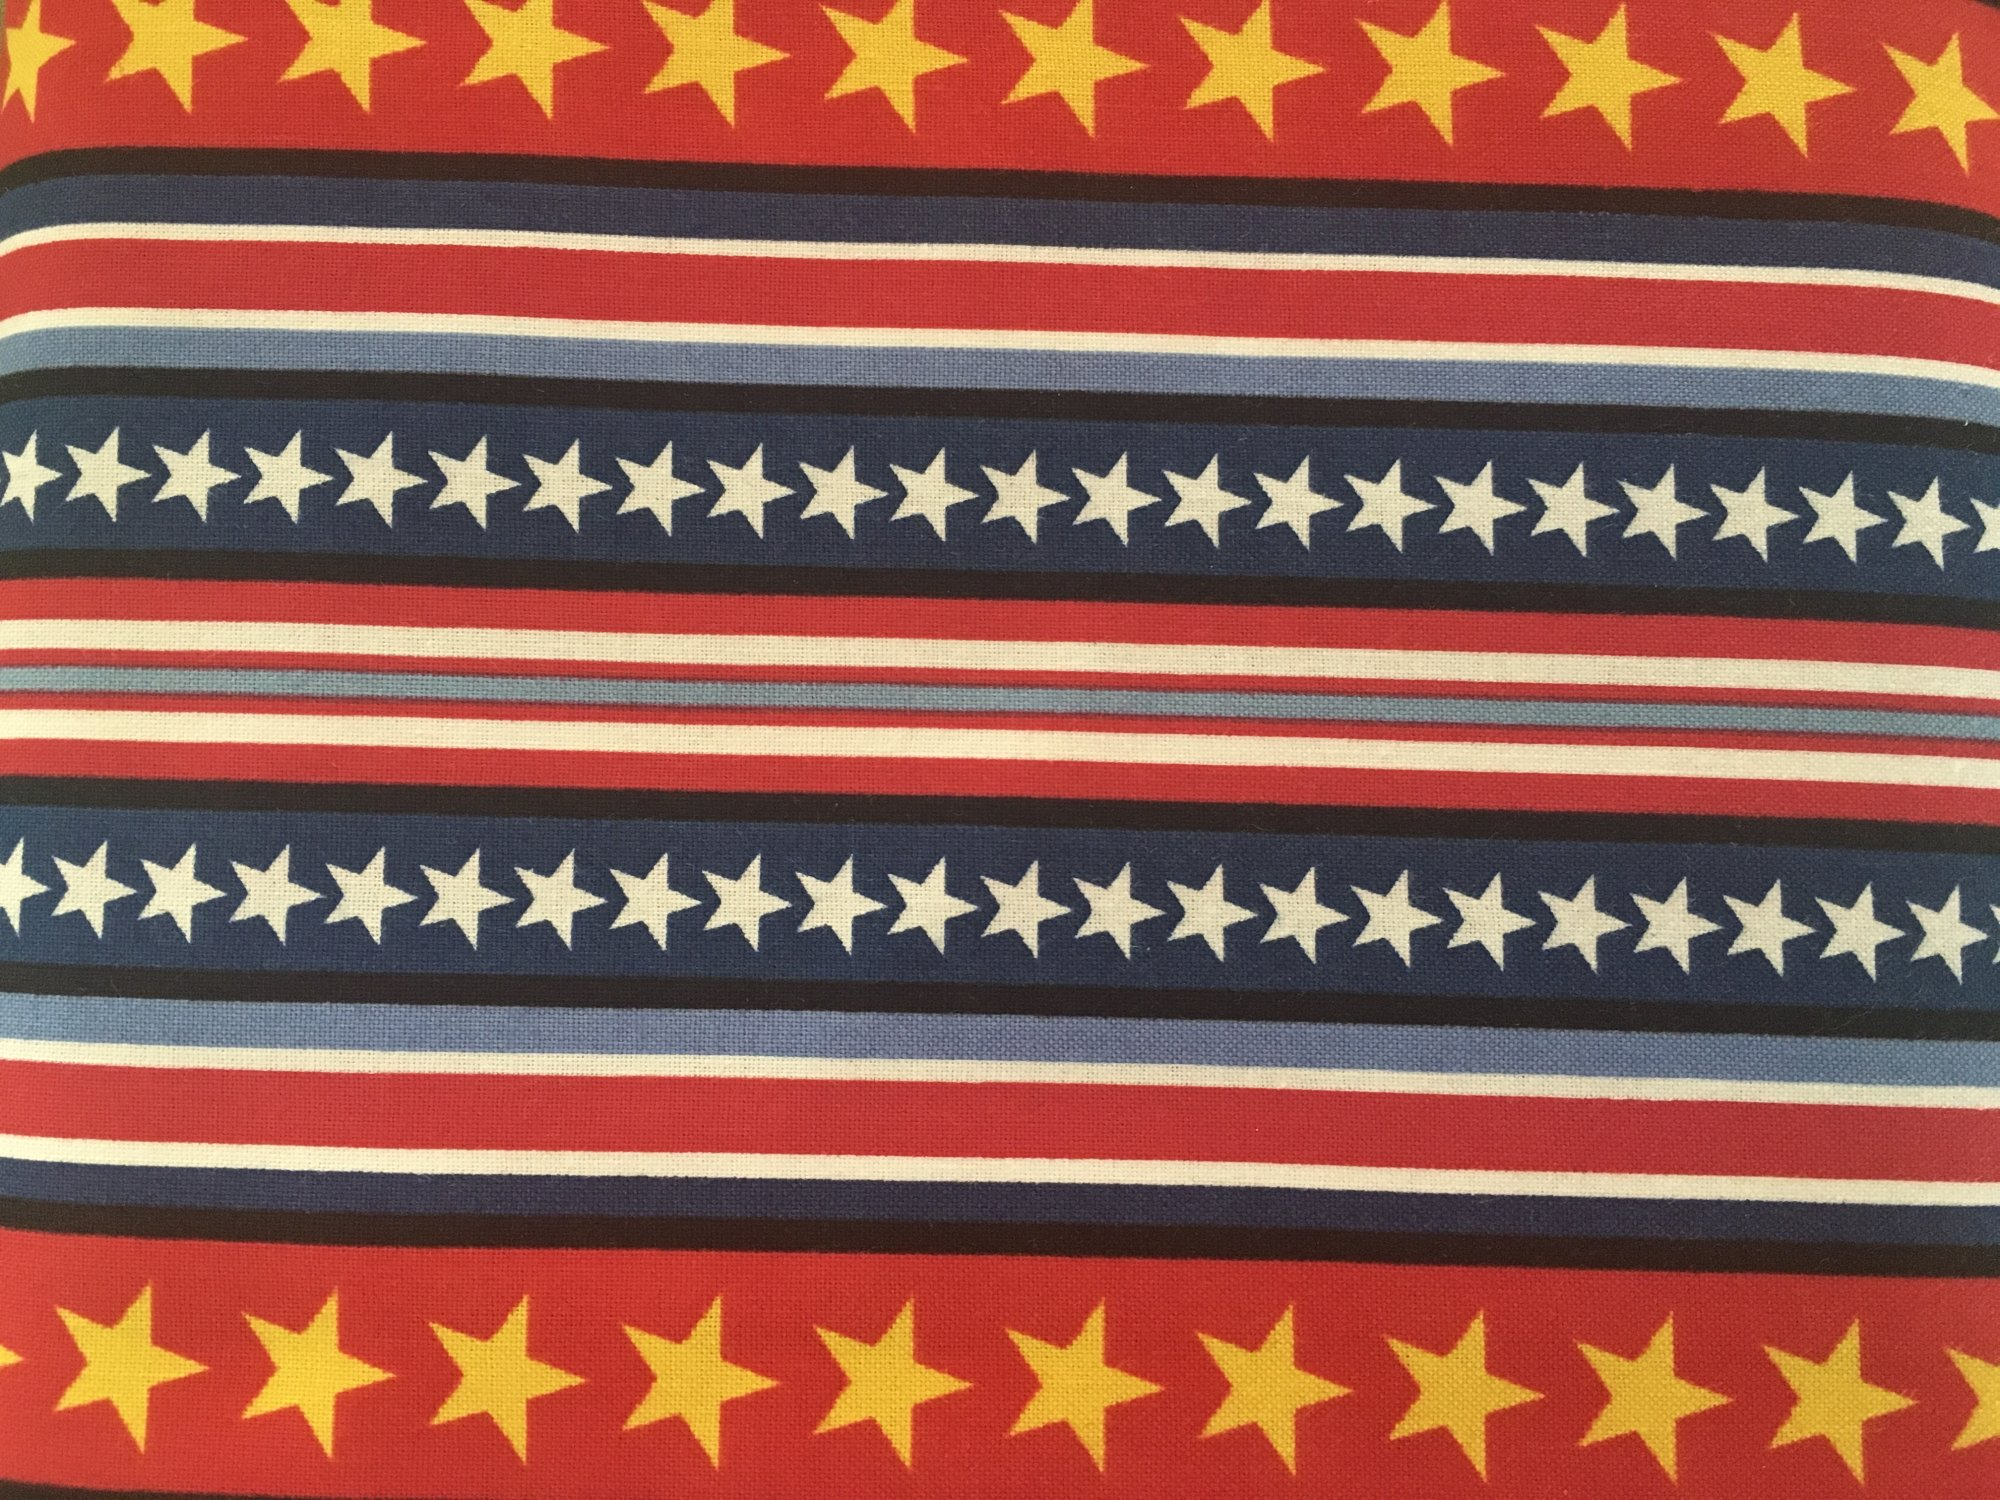 HUGS FOR HEROES STRIPE 22774RN Quilting Treasures QT